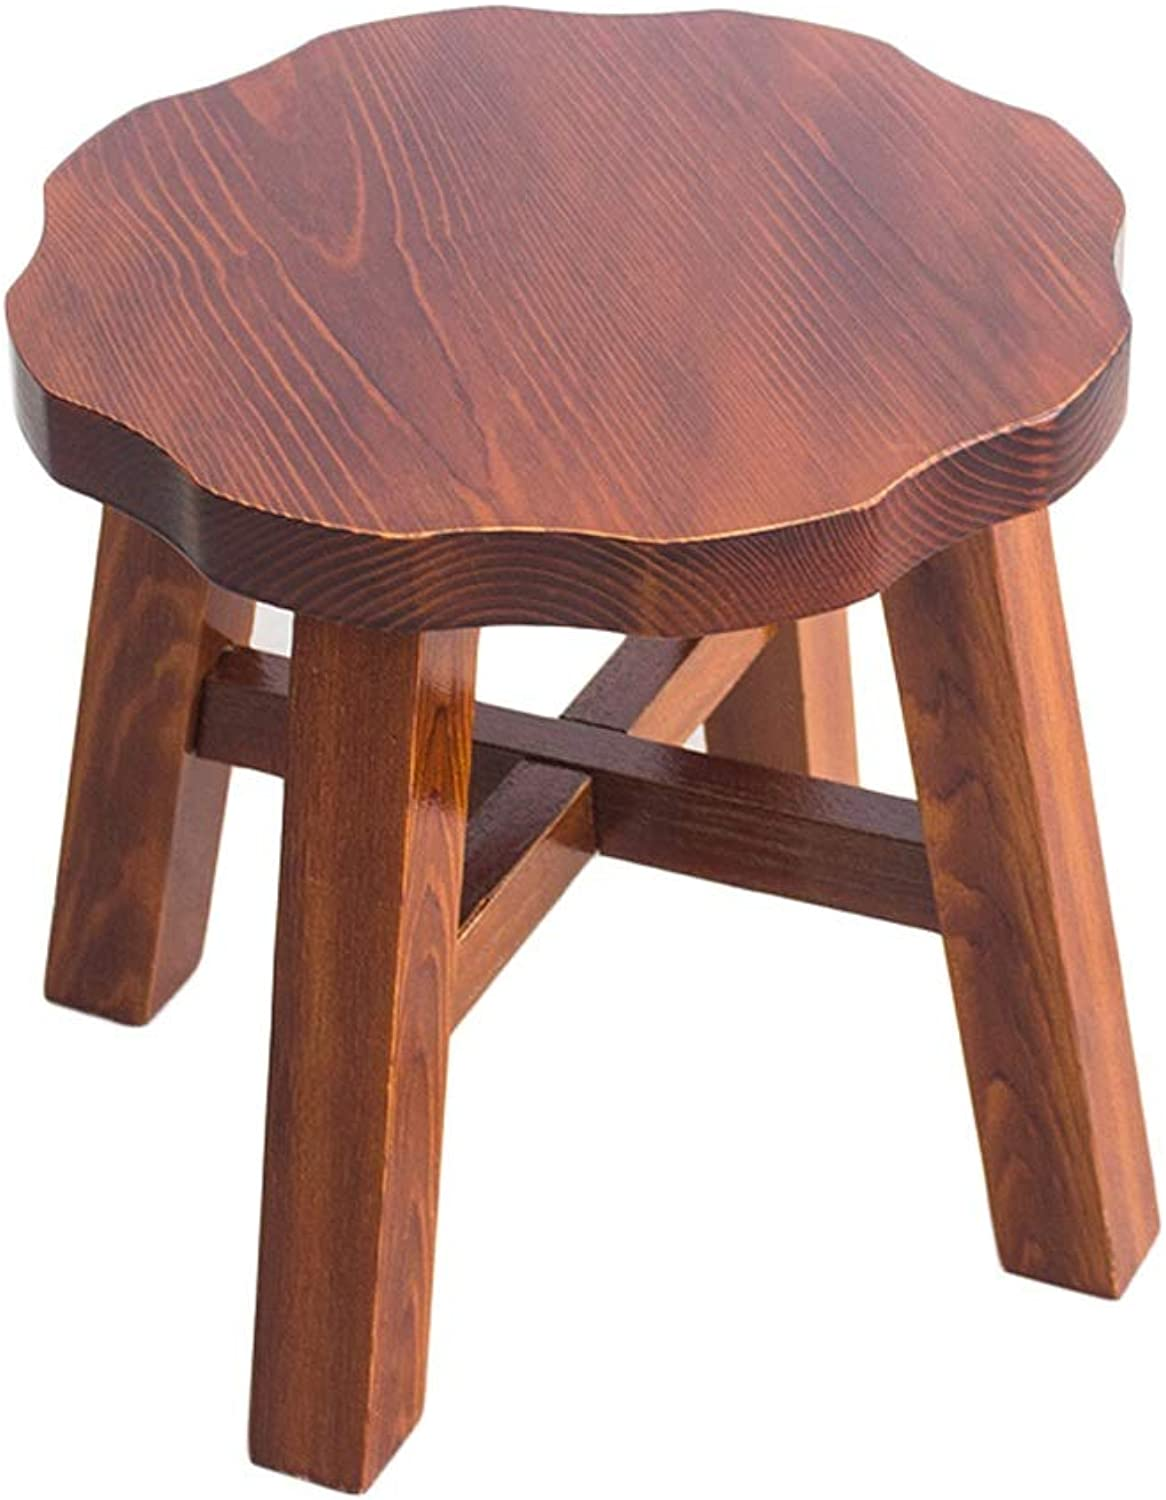 Small Stool Creative Solid Wood Small Bench Fashion Simple Modern Wood Small Stool Wooden Stool Stool (color   B)